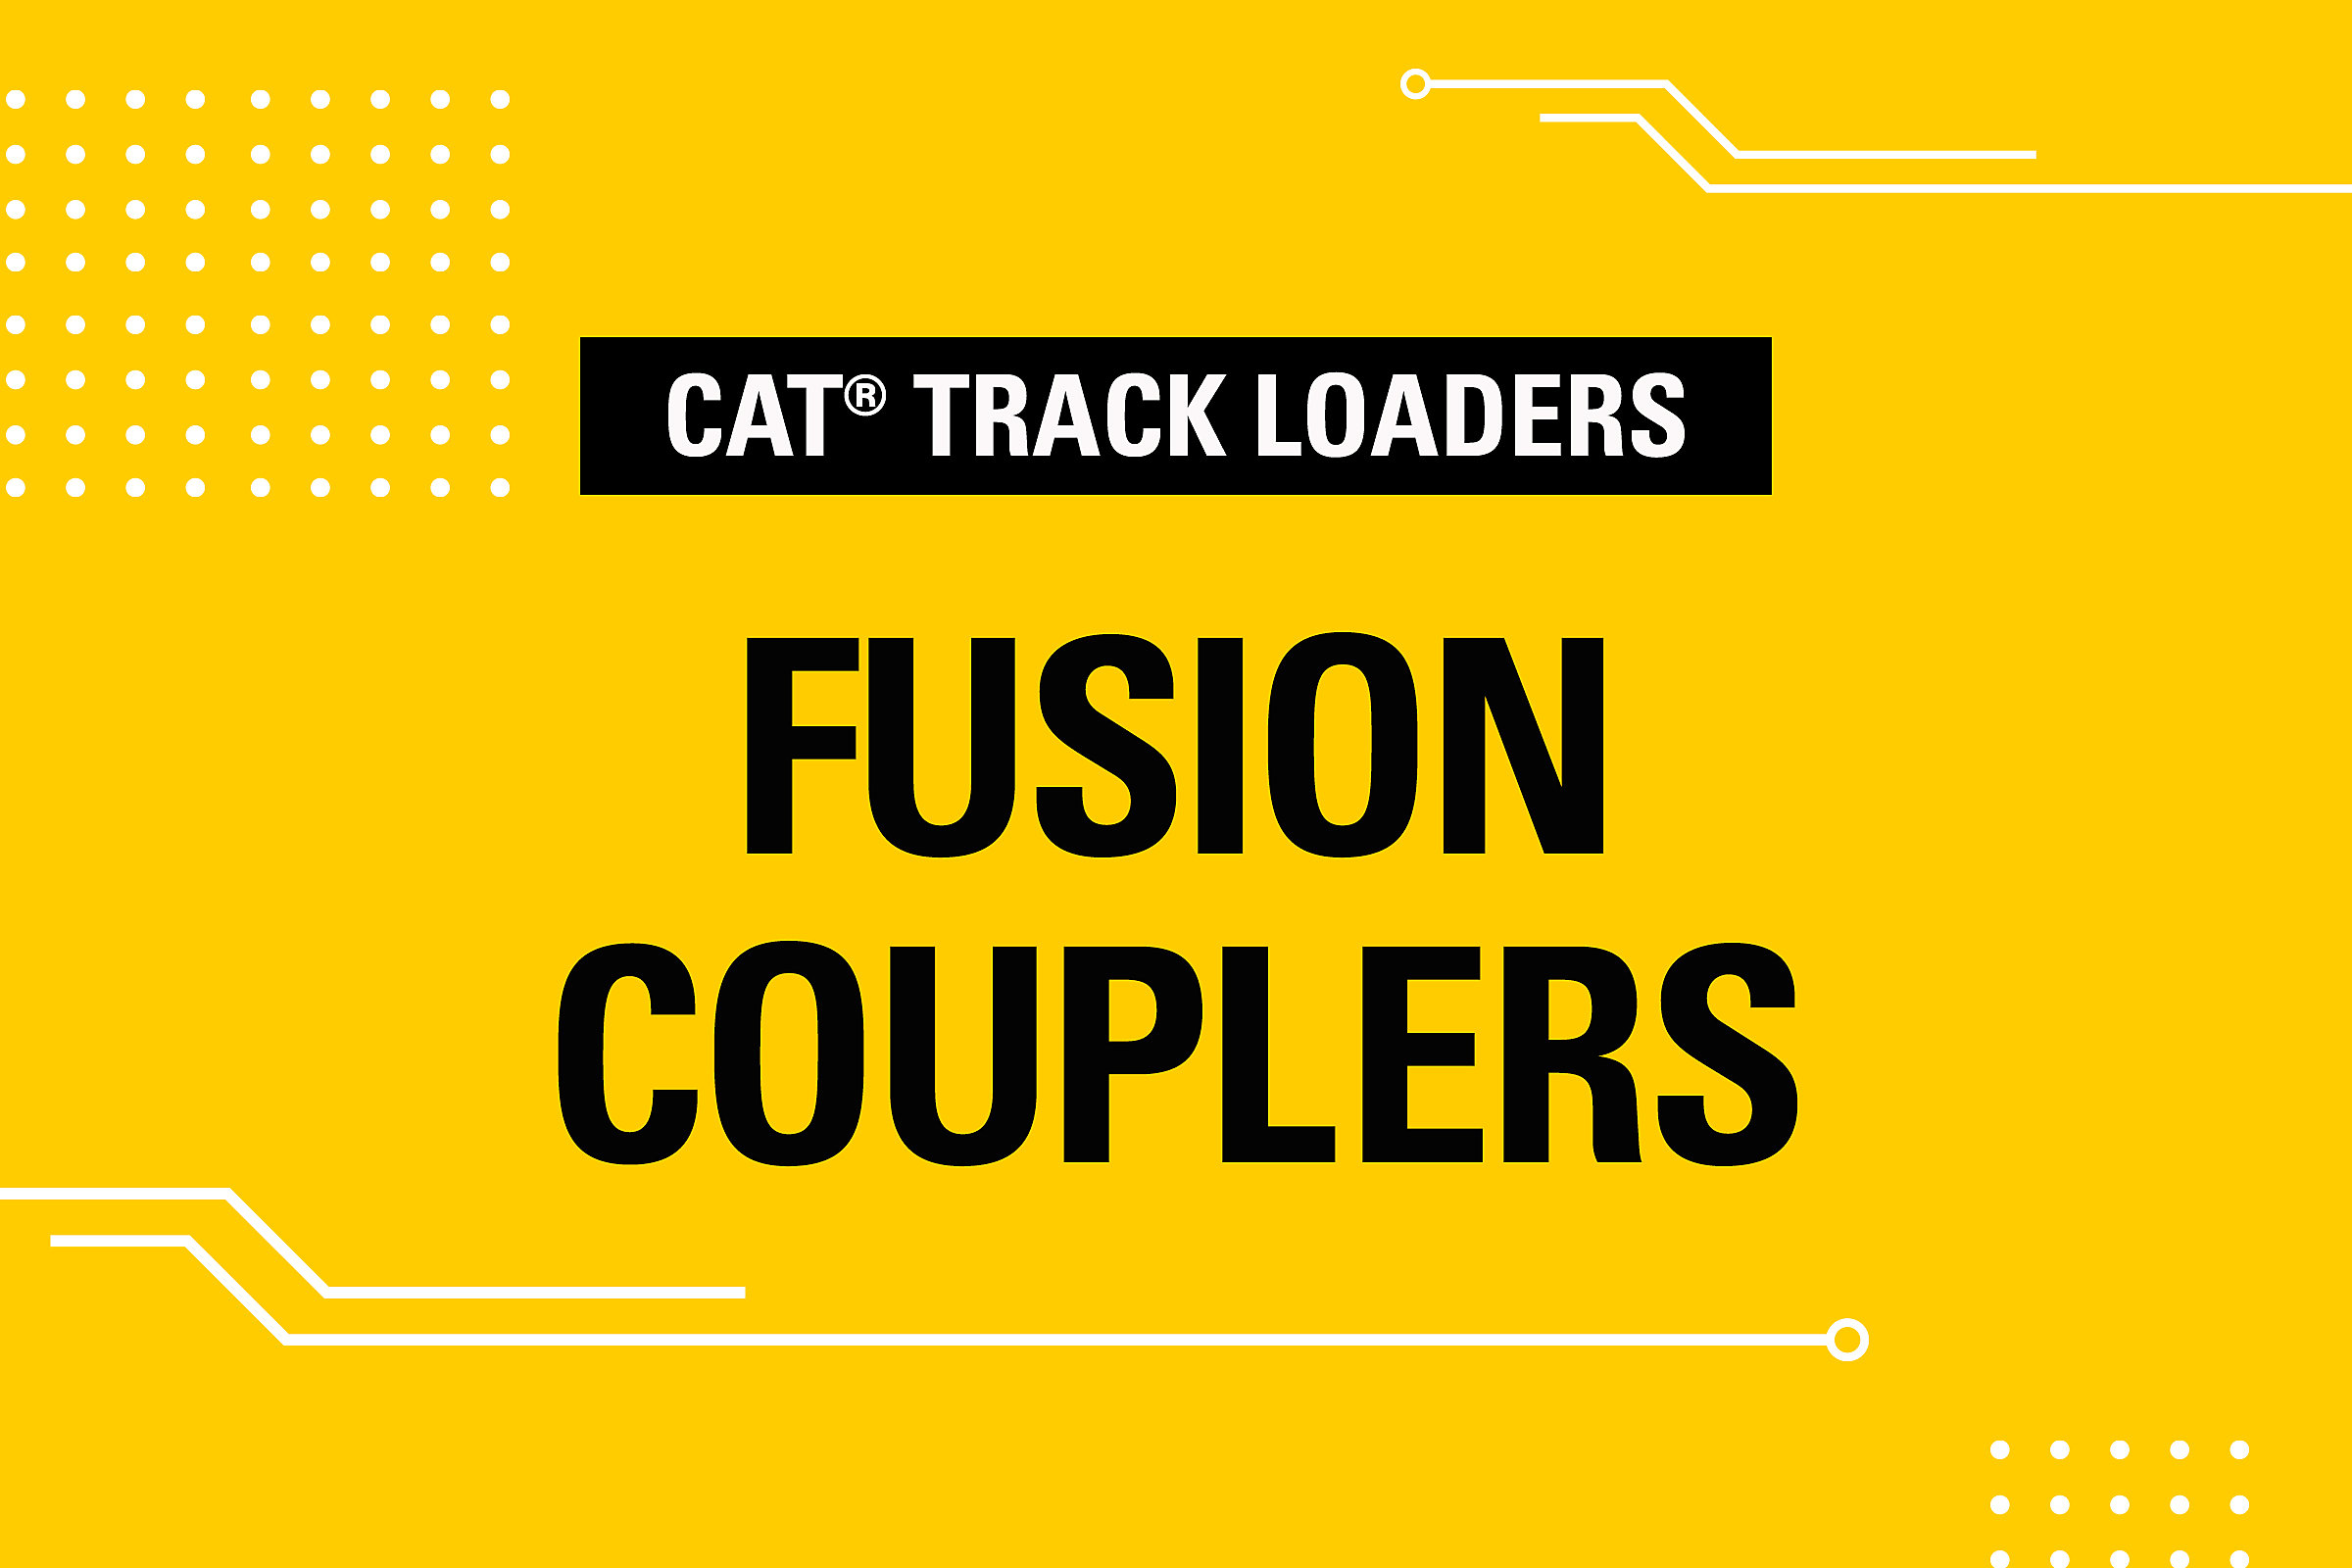 Fusion Couplers